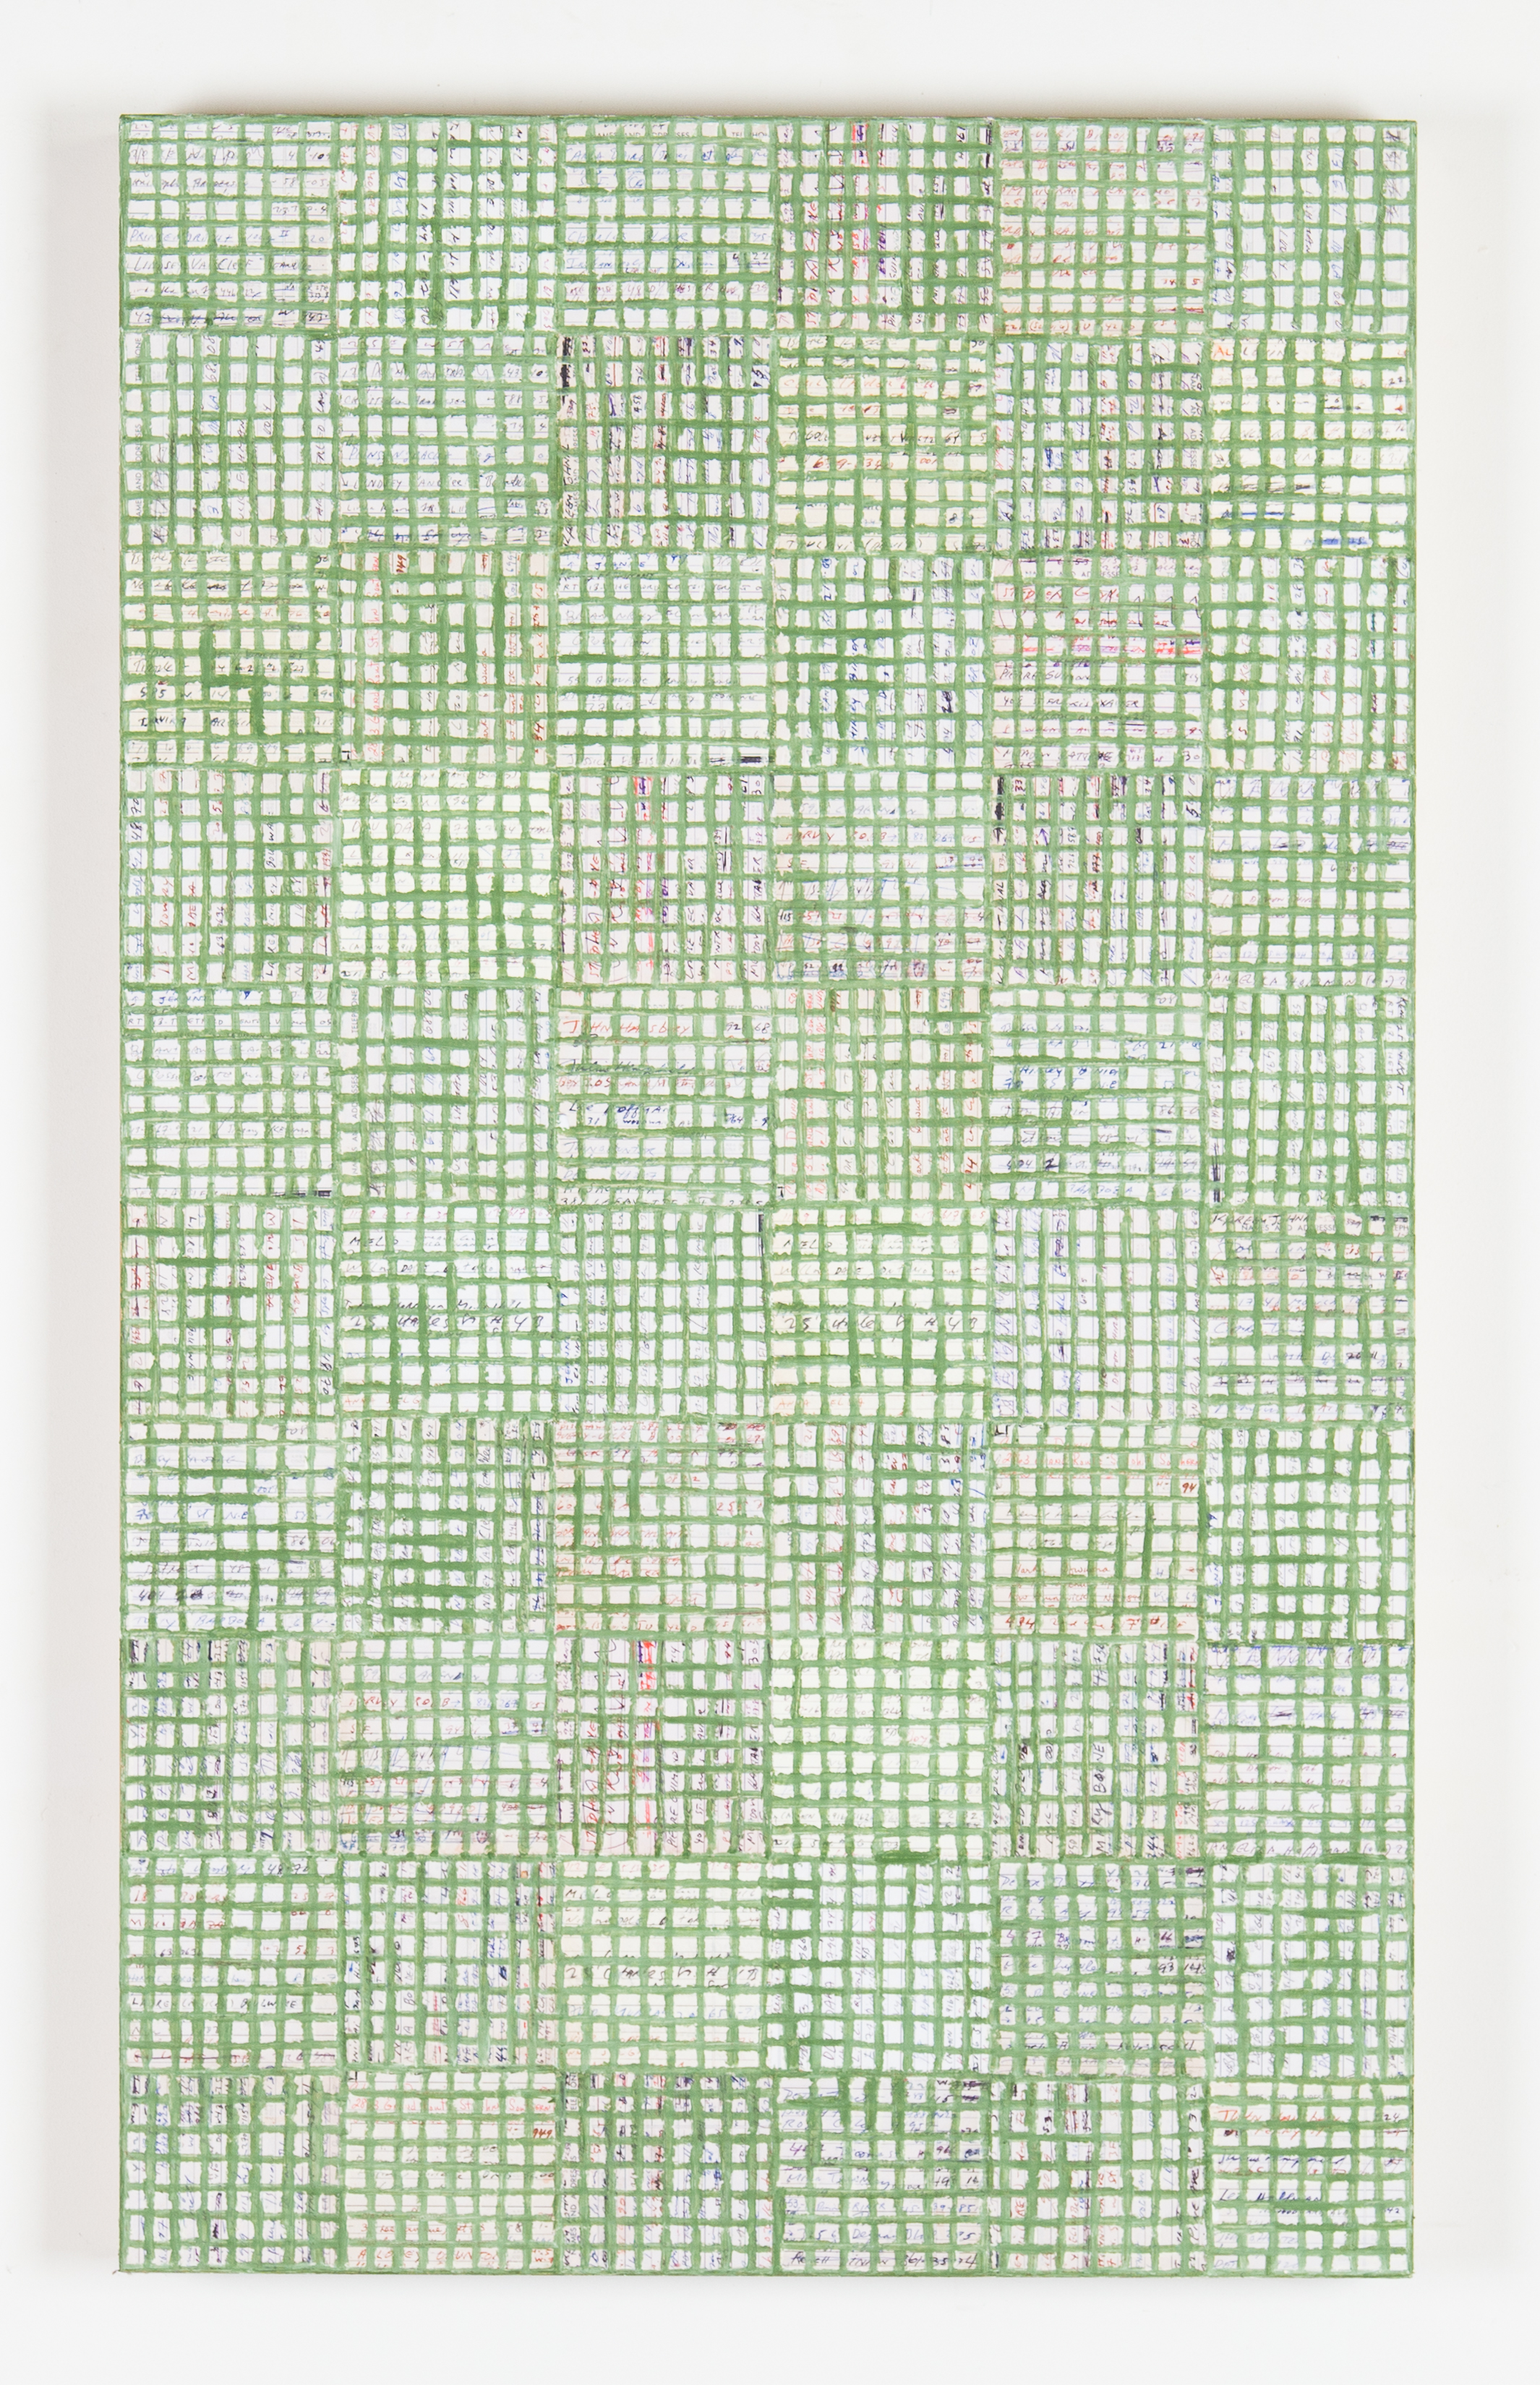 McArthur Binion  -  dna: study , 2018 Oil paint stick and paper on board 40h x 24w x 2d inches